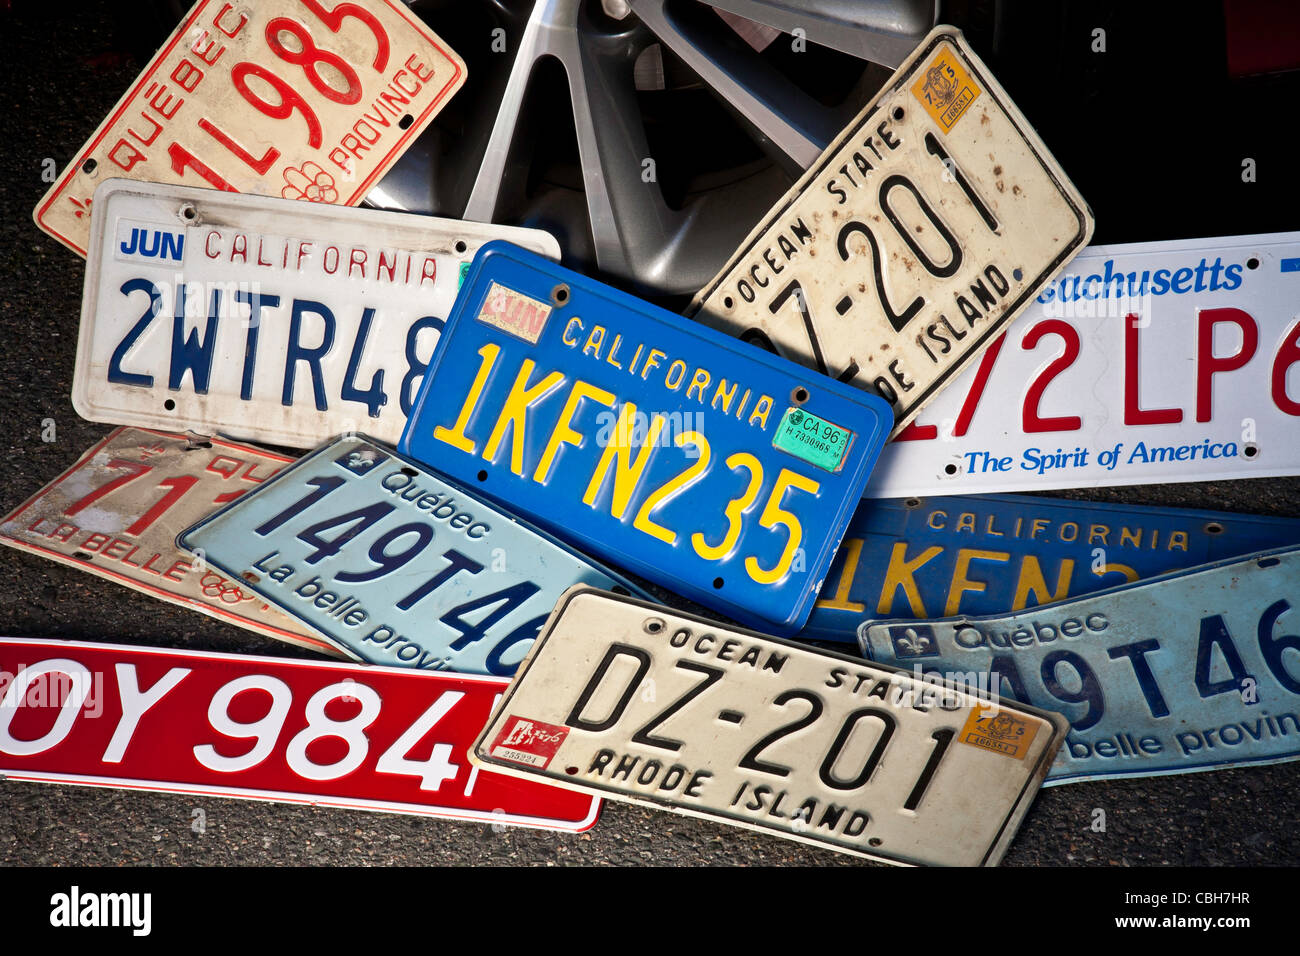 Automobile Vehicle Registration Plates Stock Photo, Royalty Free ...